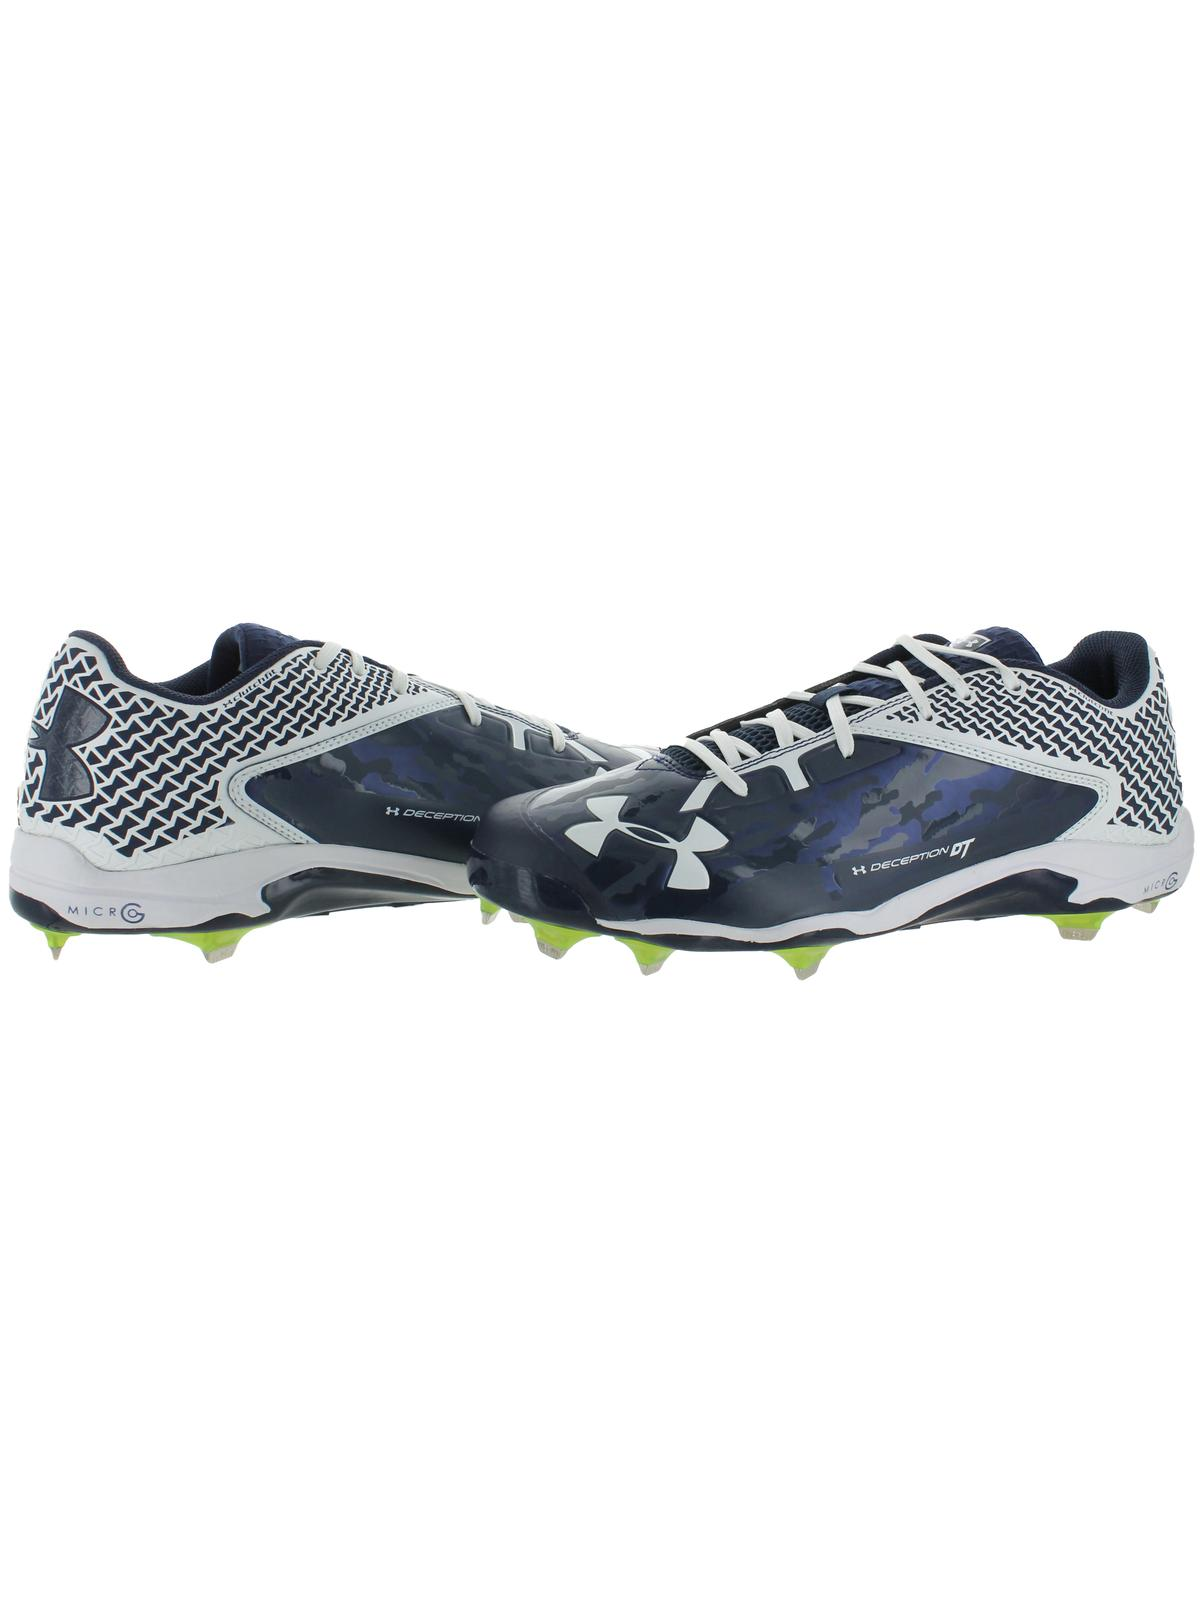 b22ca0ca5c1 Under Armour Mens Deception Low DT Baseball Cleats Navy 16 Medium(D) -  Walmart.com